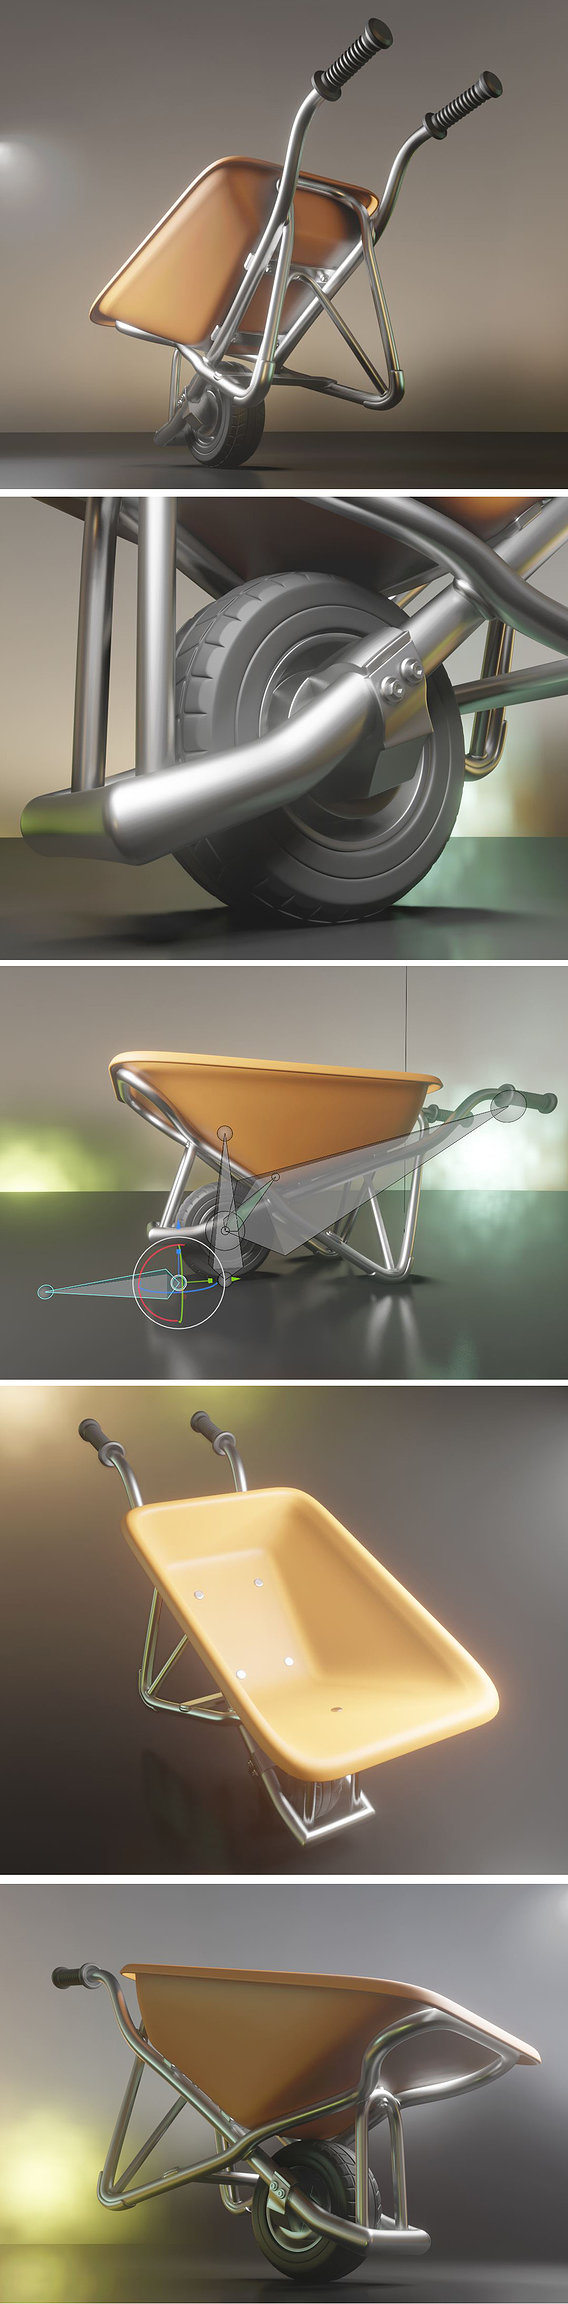 Wheelbarrow 1 Rigged Version High-Poly (Blender-2.90.1 Eevee)